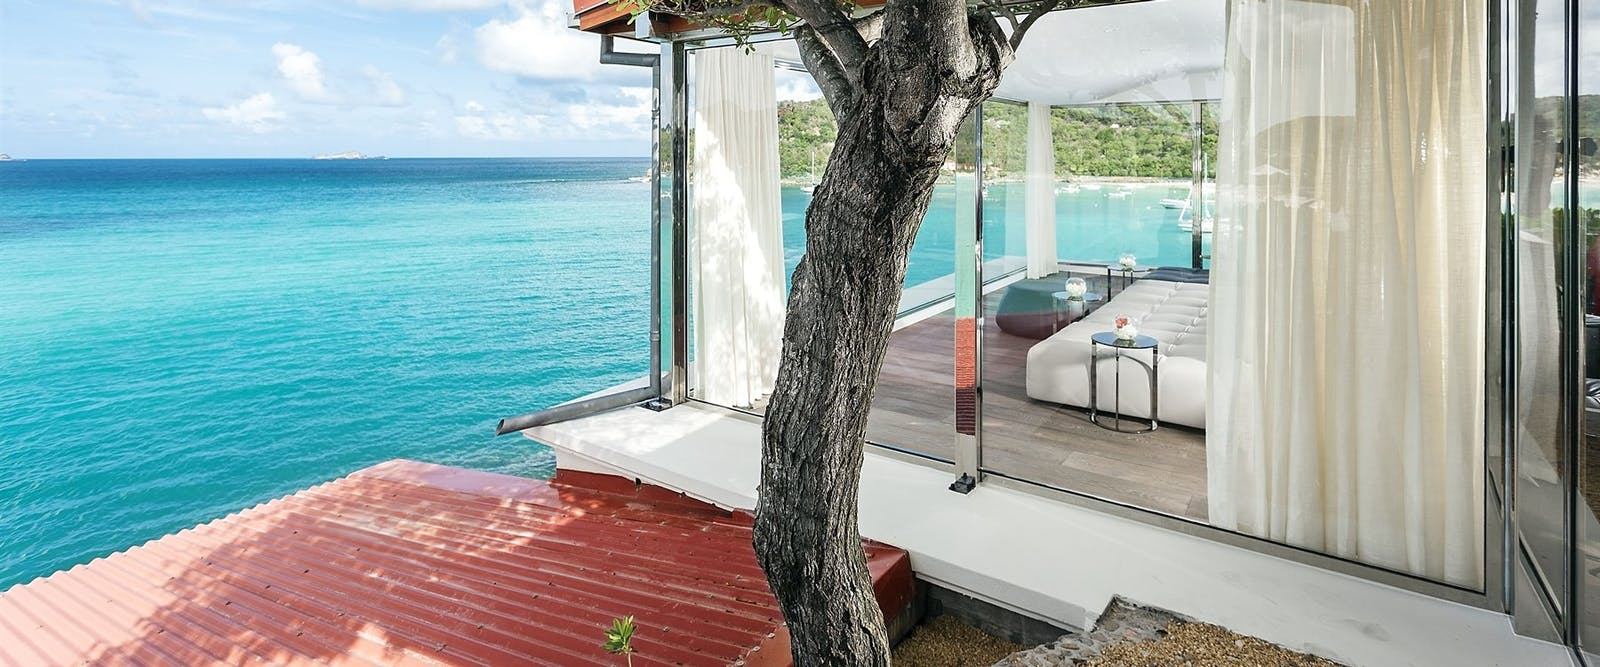 Christopher Columbus Suite at Eden Rock, St Barths